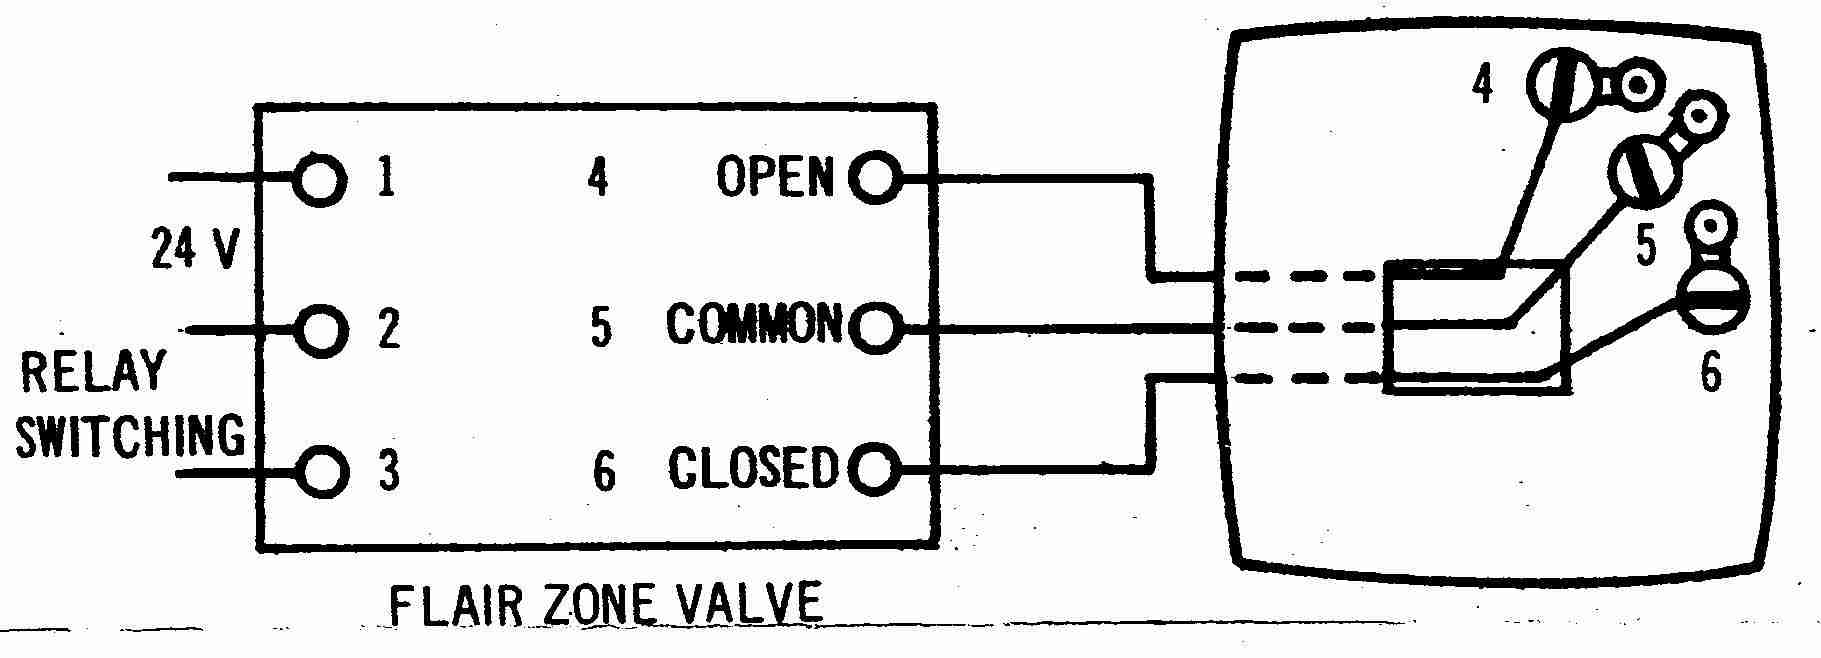 Flair3w_001_DJFc2 zone valve wiring installation & instructions guide to heating motor operated valve wiring diagram at gsmx.co